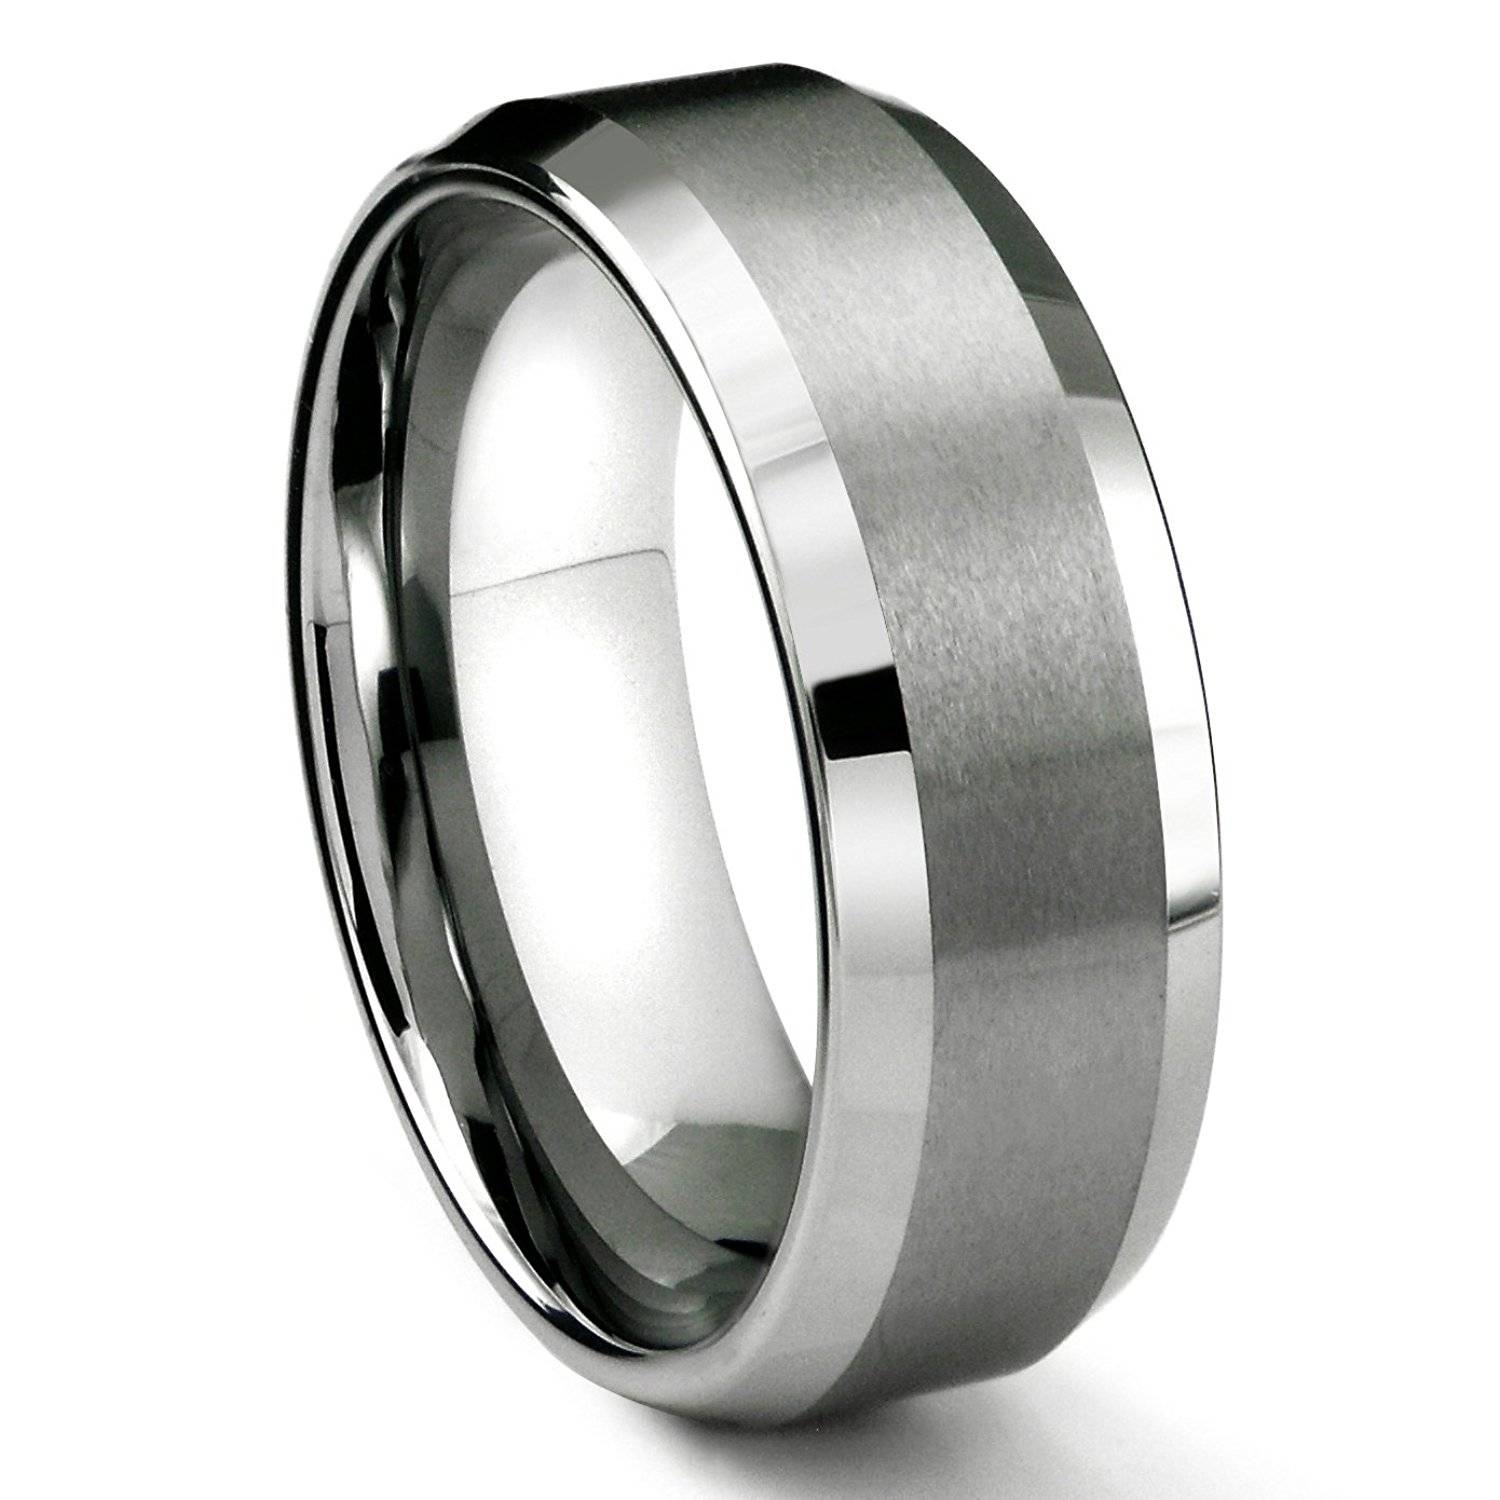 Mens Wedding Rings Size 16 Awesome Wedding Band Mens | Fineryus